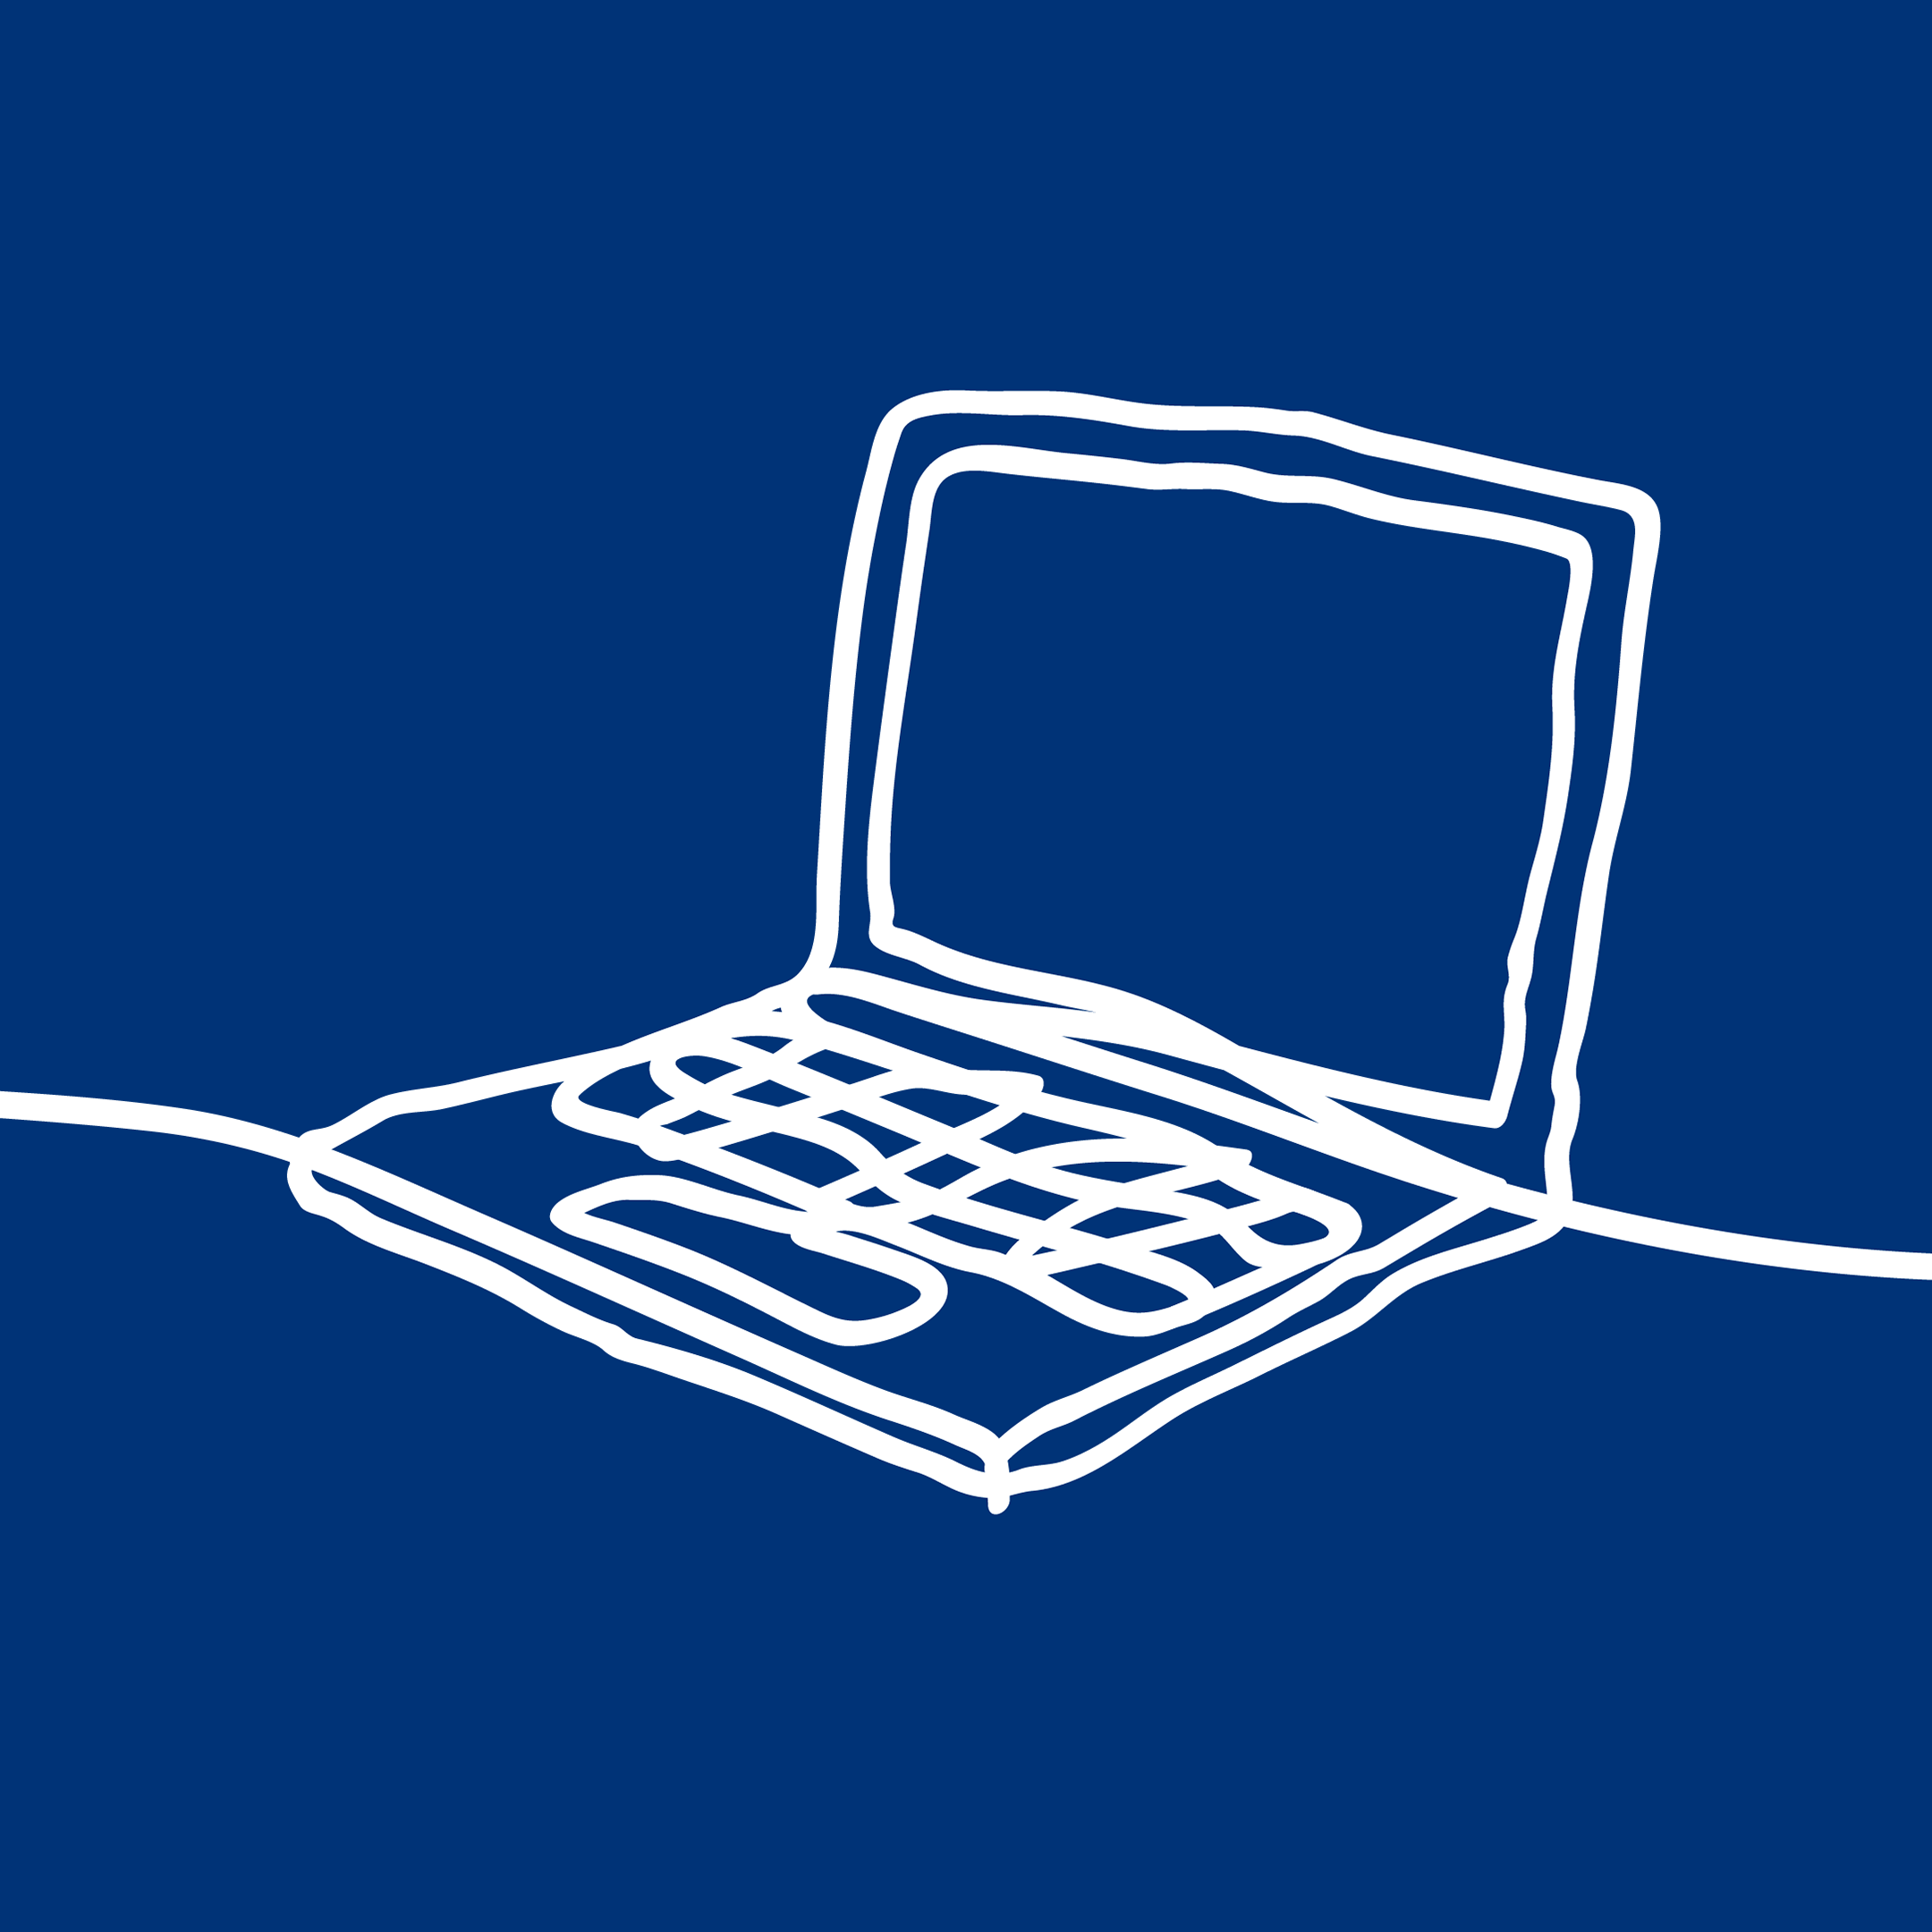 Line drawing of a laptop